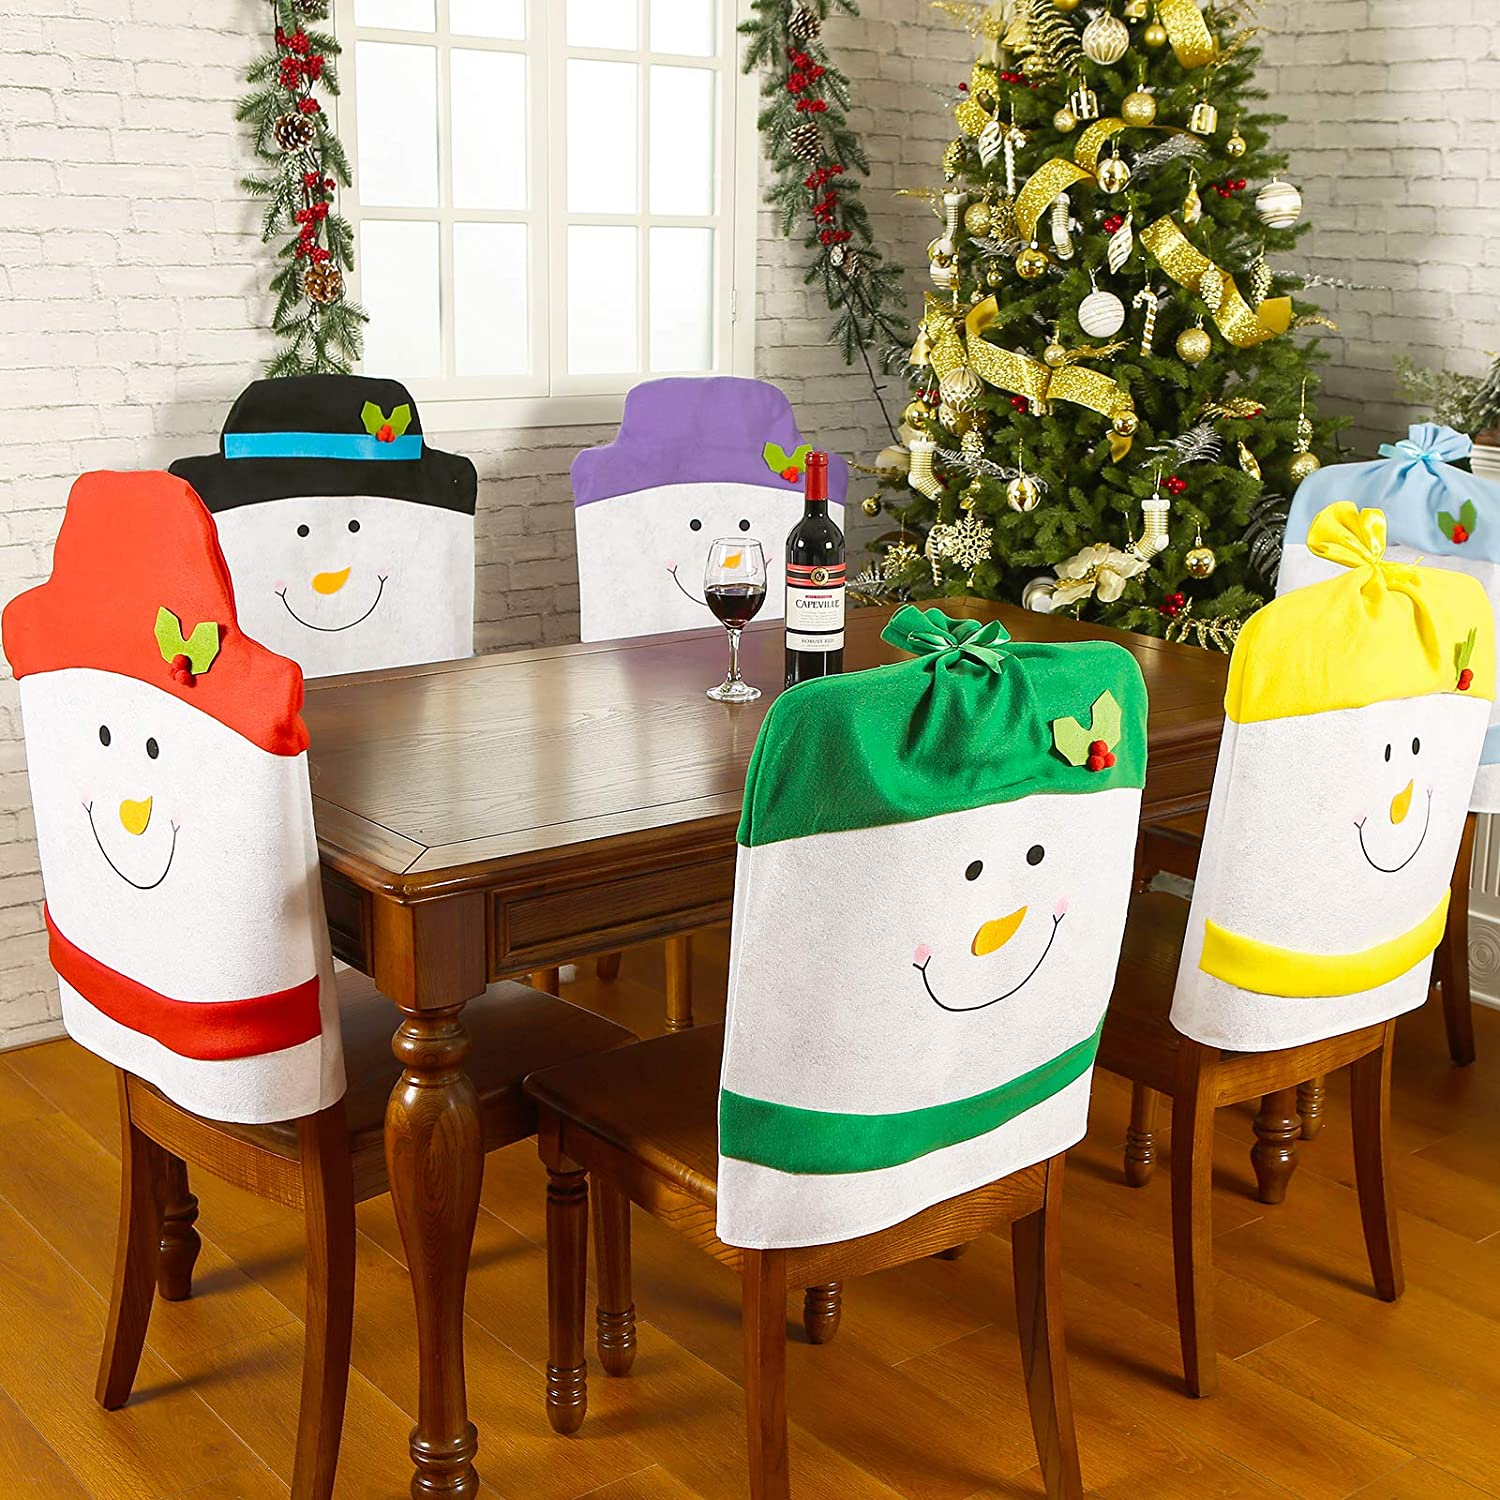 "Sattiyrch Christmas Snowman Chair Covers Set of 6,Novelty Party Holiday Dining Chair Slipcovers for Kitchen,Bar or Restaurant,23""(H) 20.5""(W): Kitchen & Dining"